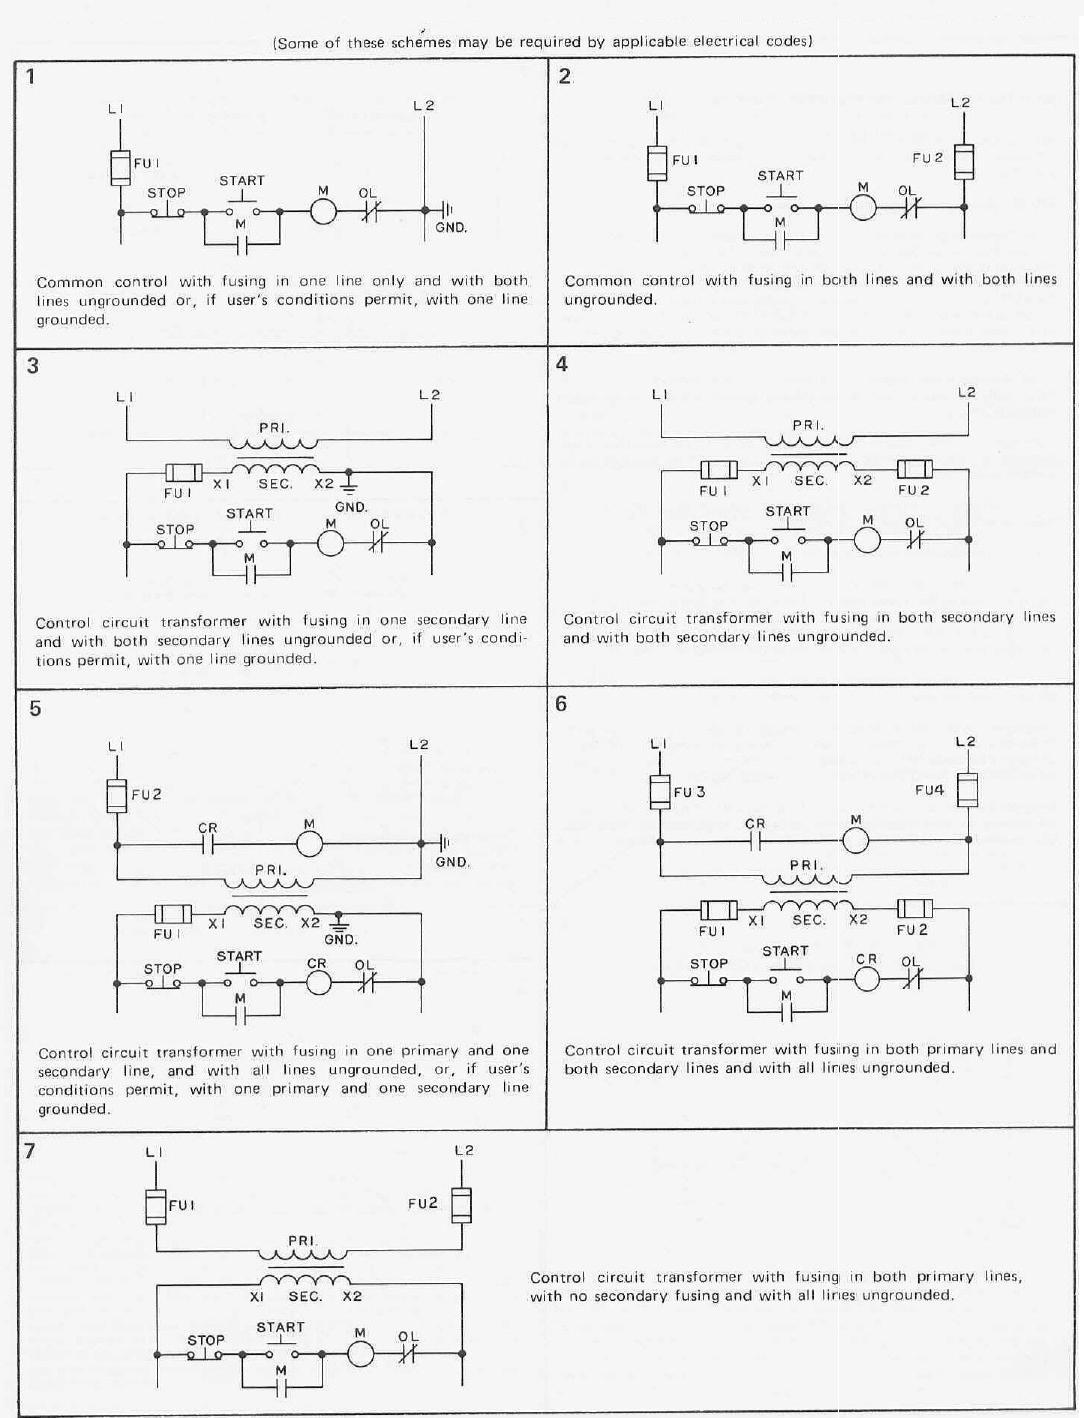 WiringDiagram10 pioneer breaker & control supply your one stop shop for all sprecher schuh ct3-12 wiring diagram at mr168.co